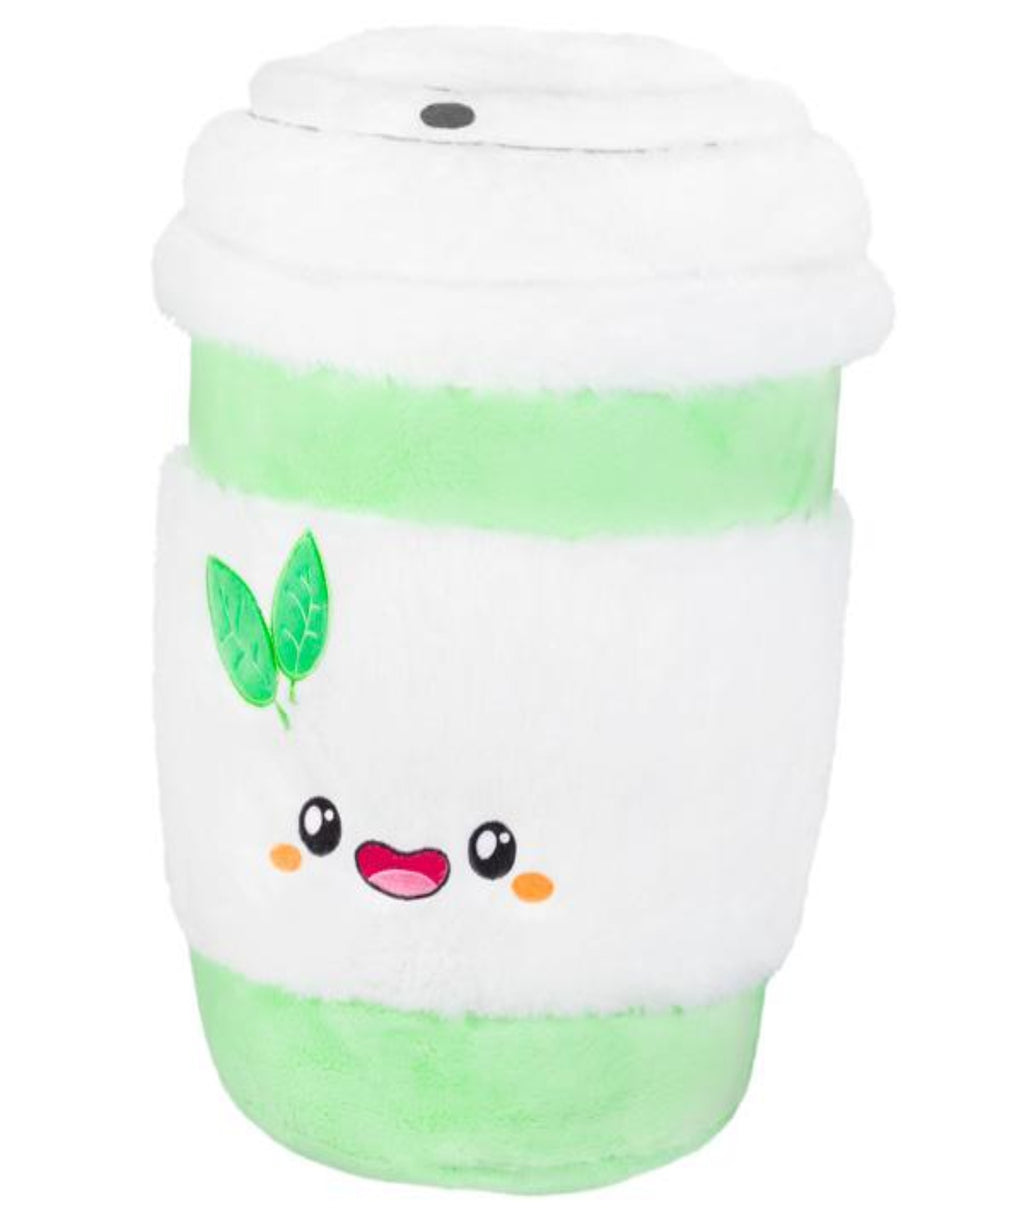 Squishable Matcha Tea